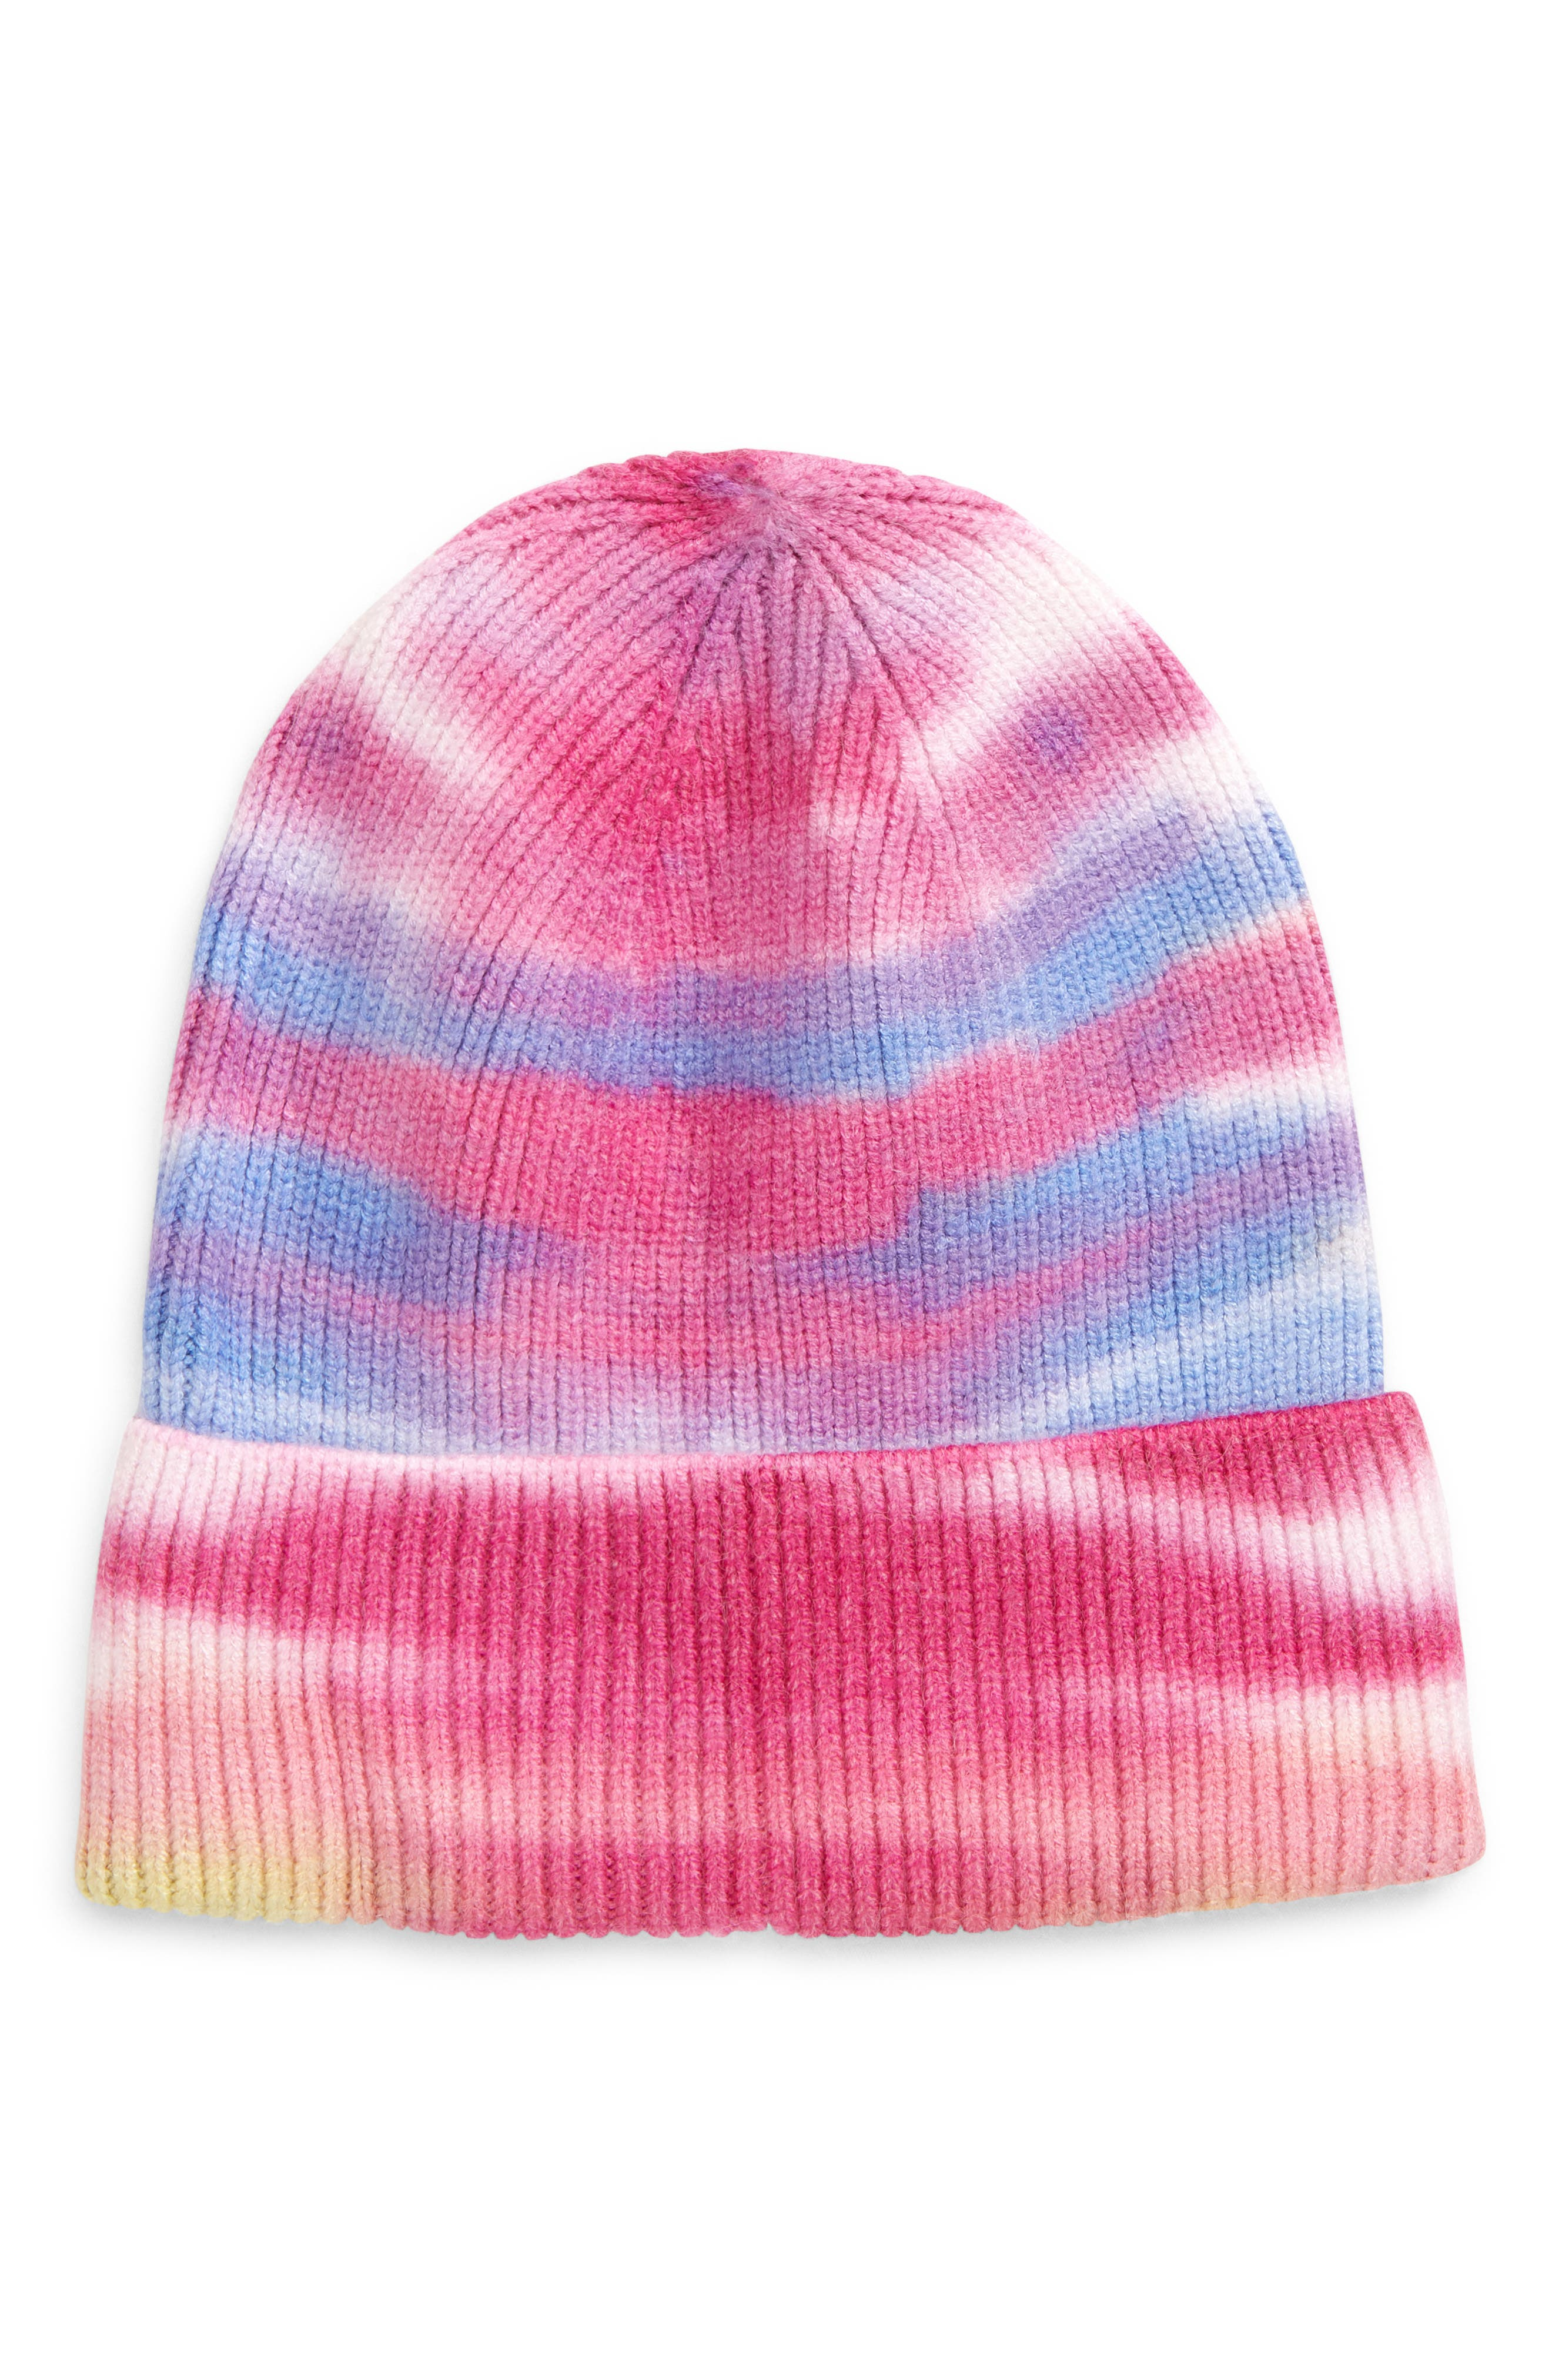 A trendy tie-dyed beanie is sized for kids and fashioned in a warm and machine-washable ribbed knit. Style Name: Tucker + Tate Kids\\\' Tye Die Beanie (Big Girl). Style Number: 6095713. Available in stores.